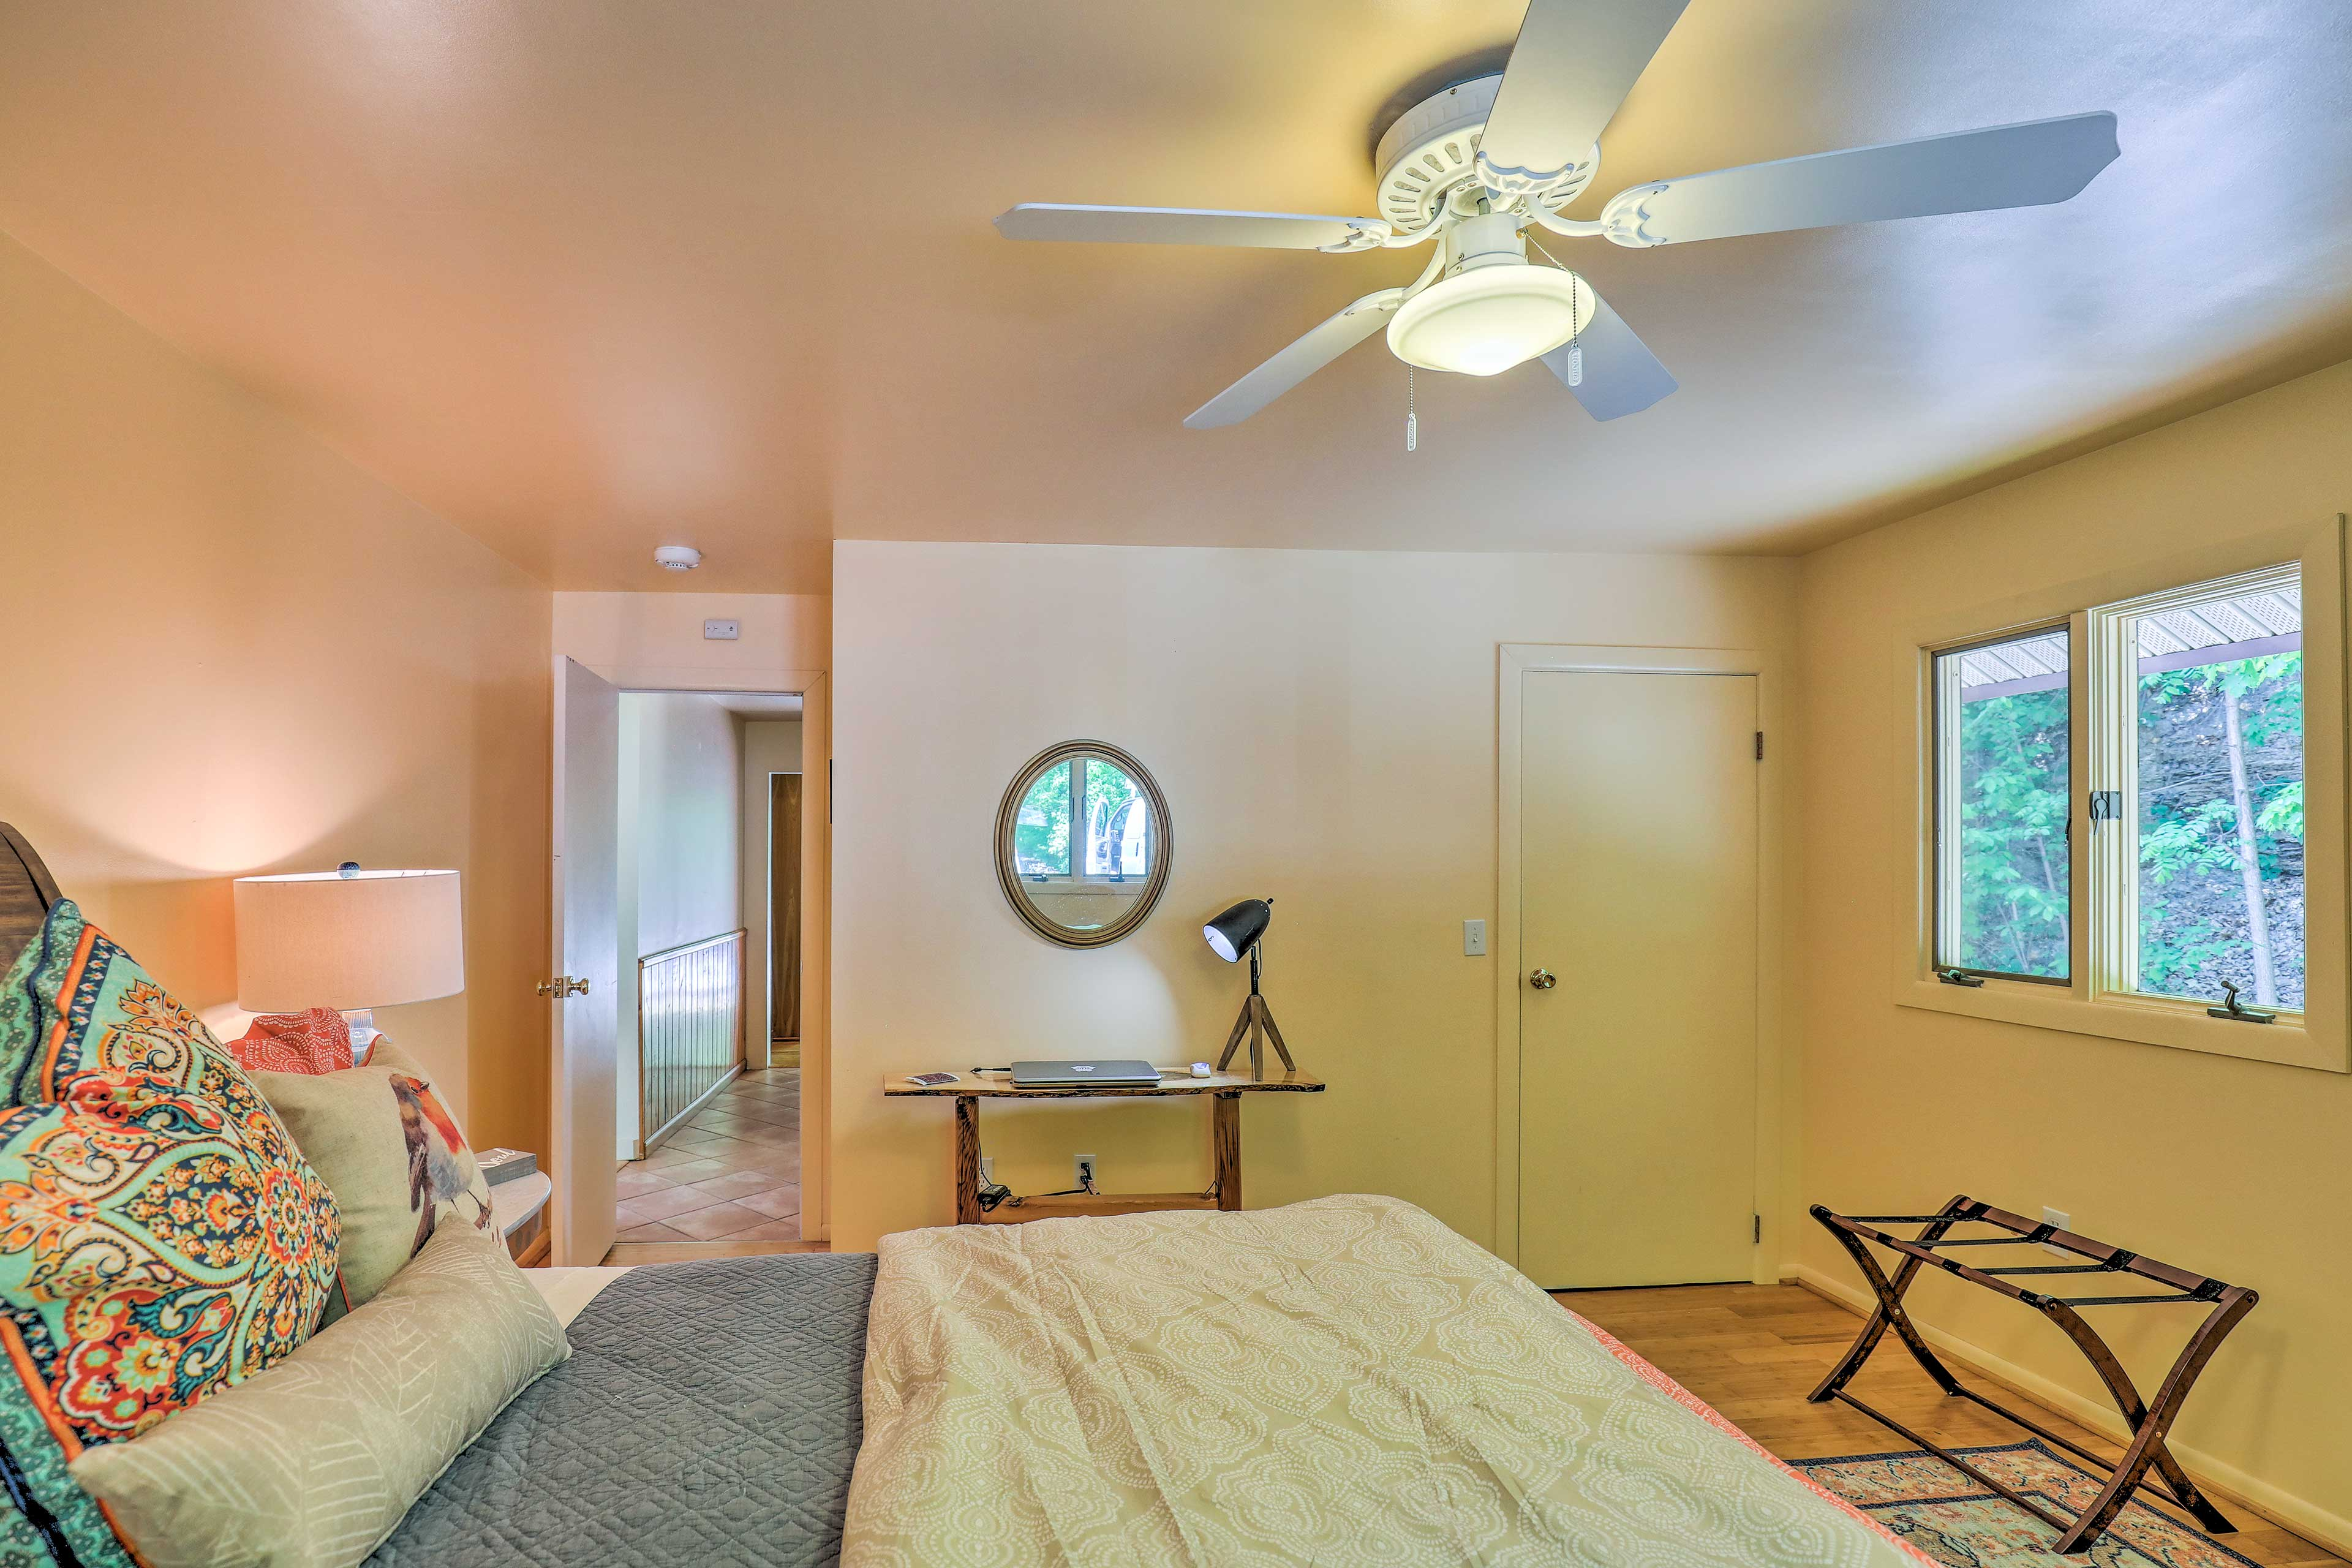 Two windows let plenty of natural light stream in to brighten the cozy bedroom.